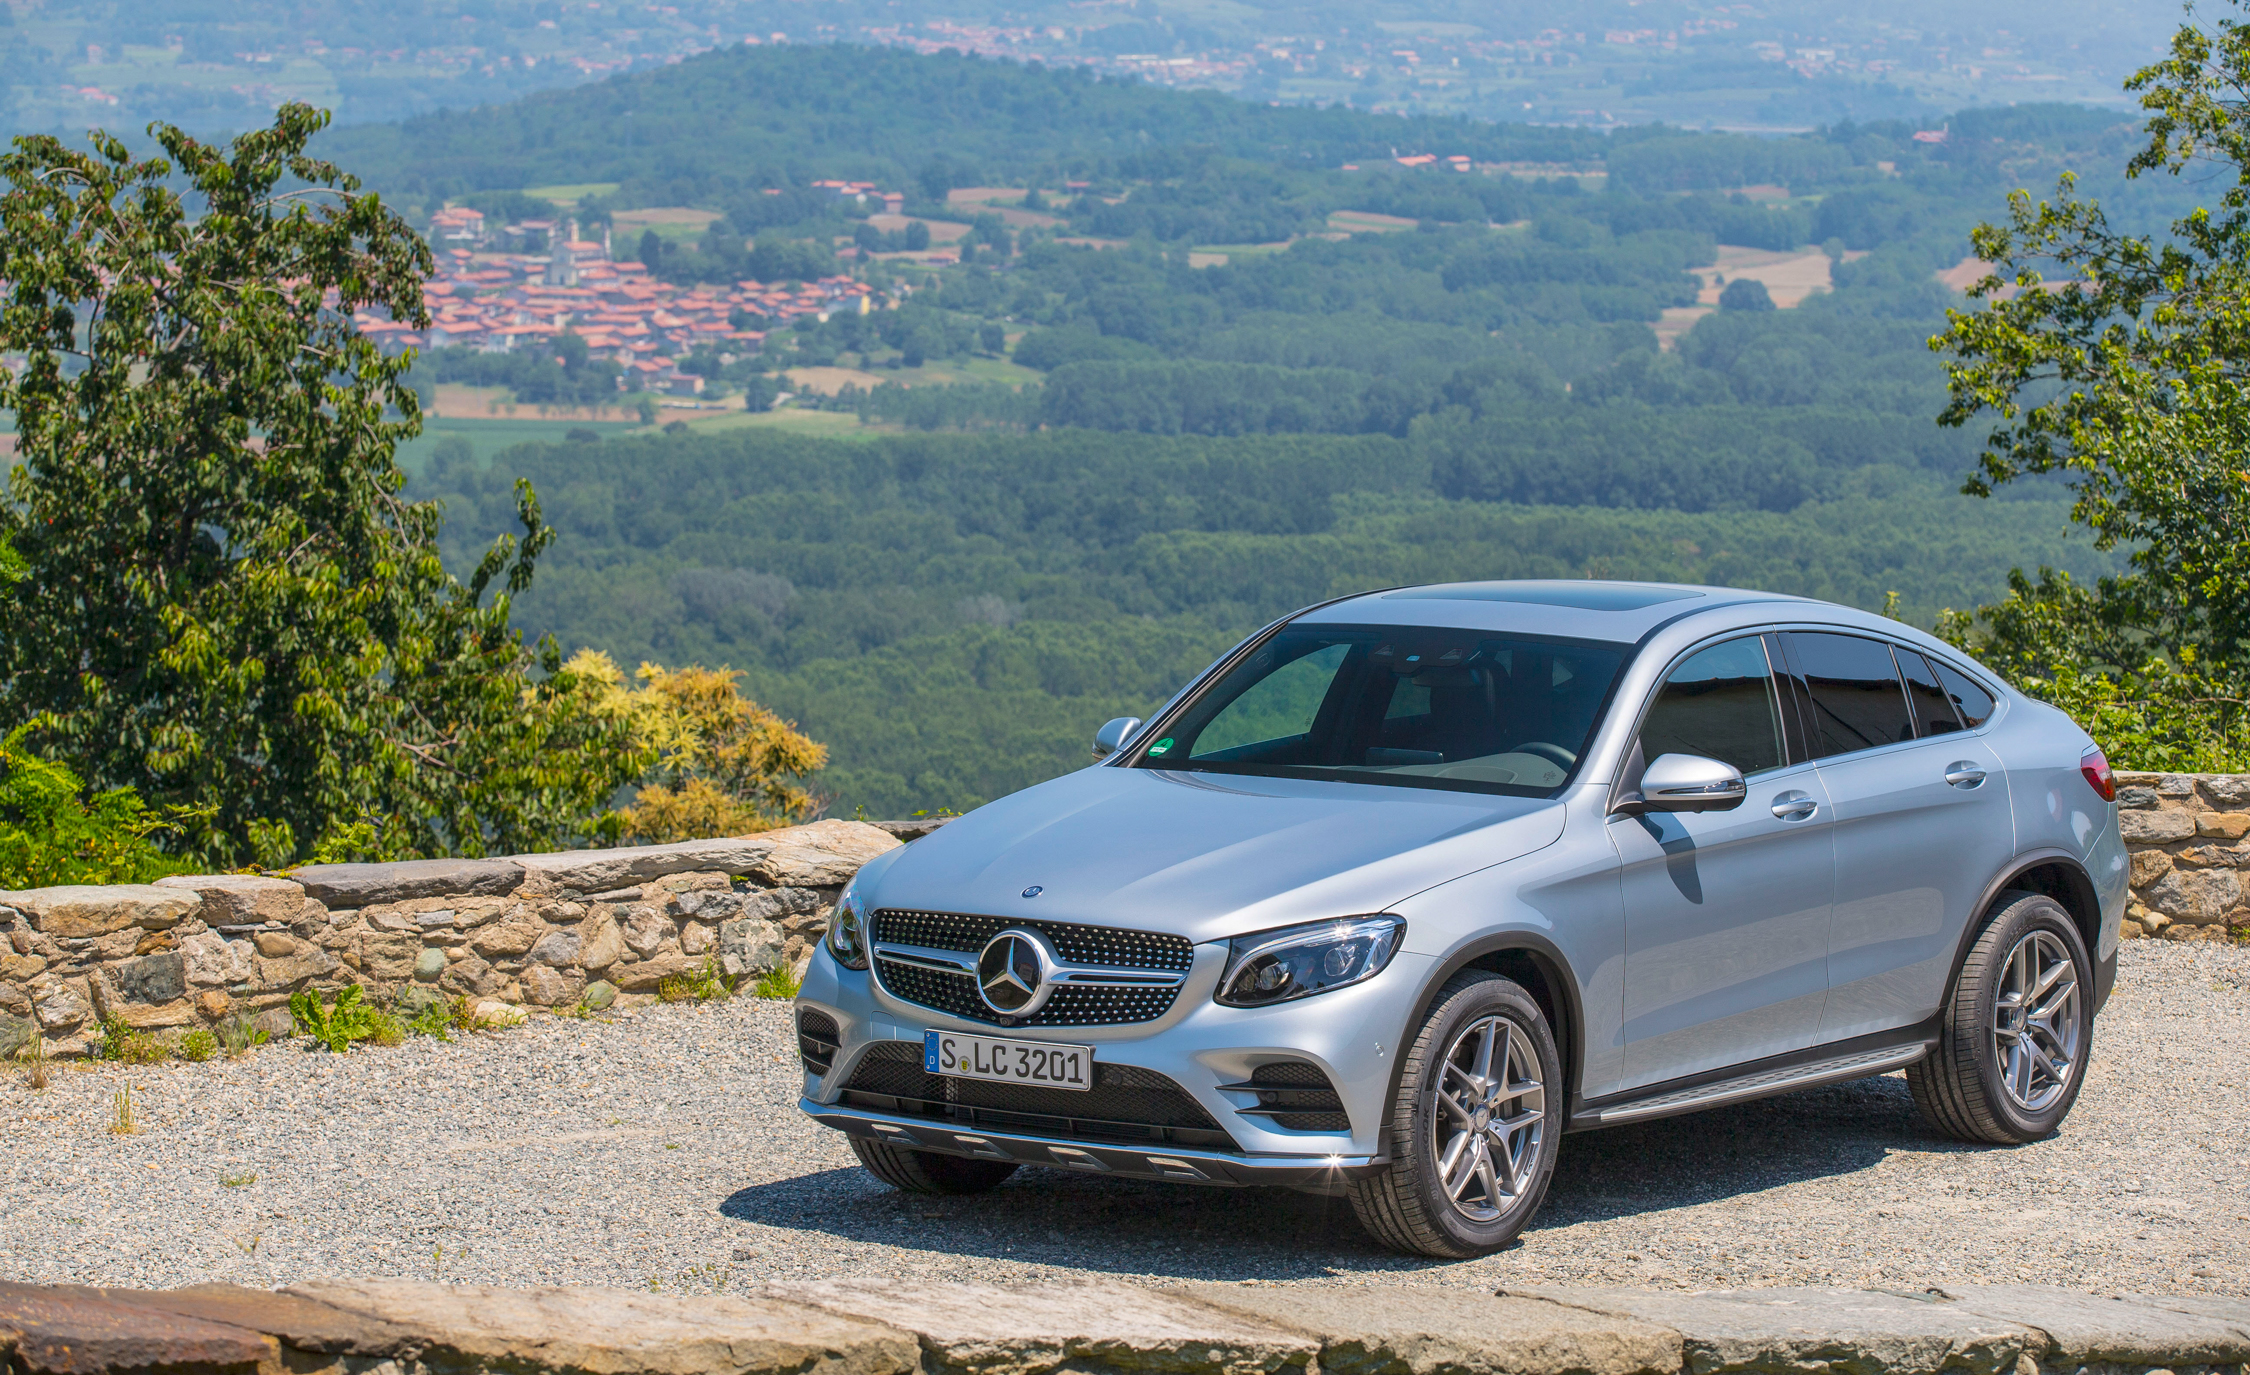 2017 Mercedes Benz GLC300 4MATIC Coupe (Photo 9 of 19)